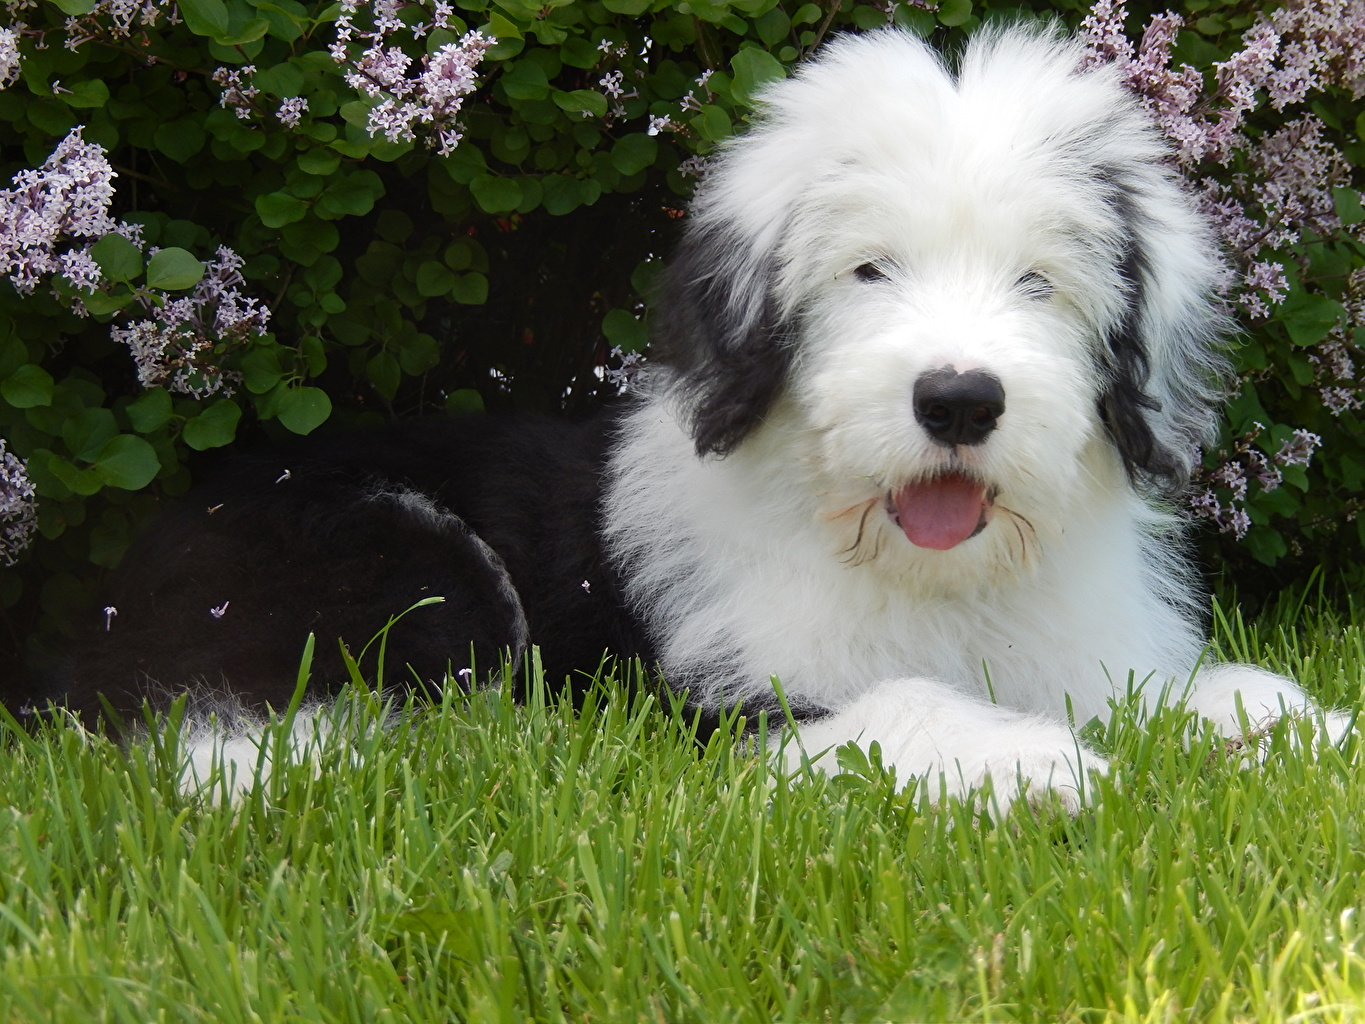 Photos Puppy Old English Sheepdog Dogs Grass Animals puppies dog animal